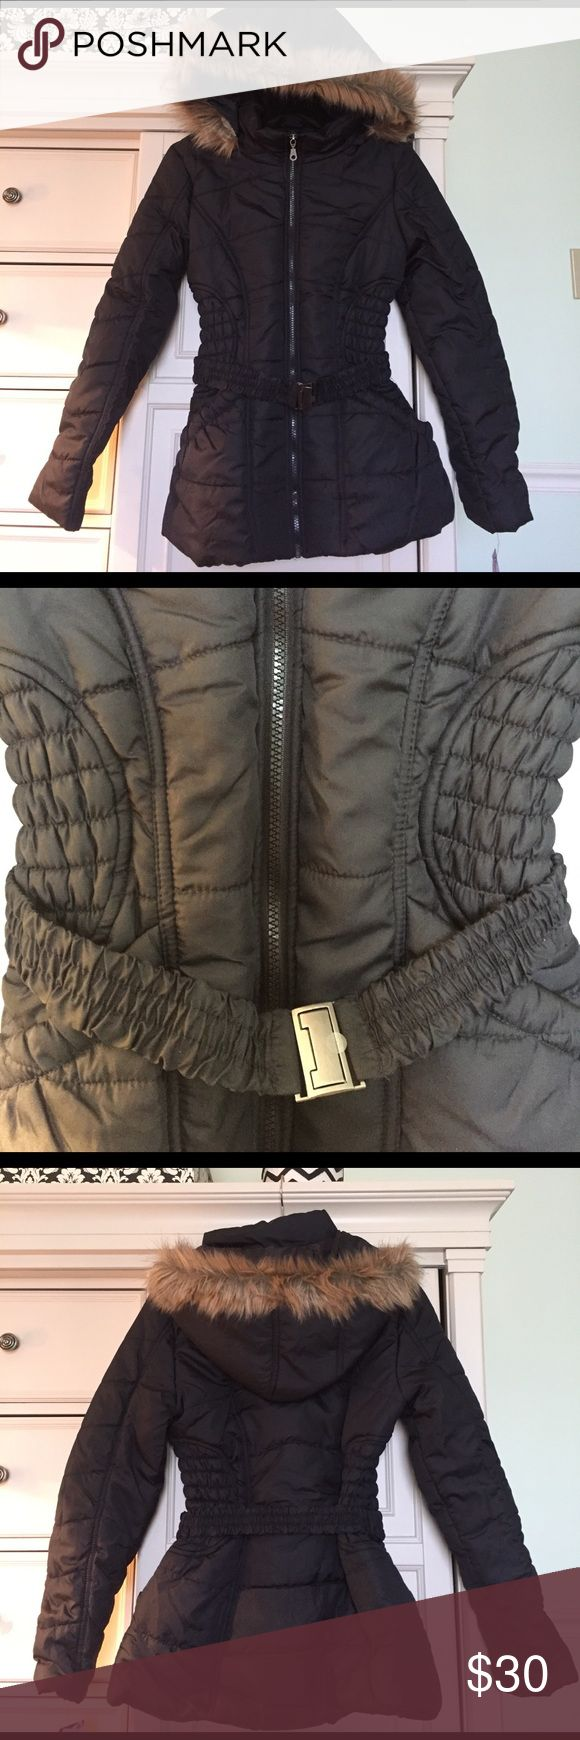 """Rampage Puffer Coat Stay warm in this super stylish coat. Mid-weight coat with slit pockets and faux fur lined removable hood. A belt creates a slimming effect and showcases the nicely down quilting. Hits at the hips- approximately 25"""" long Rampage Jackets & Coats Puffers"""